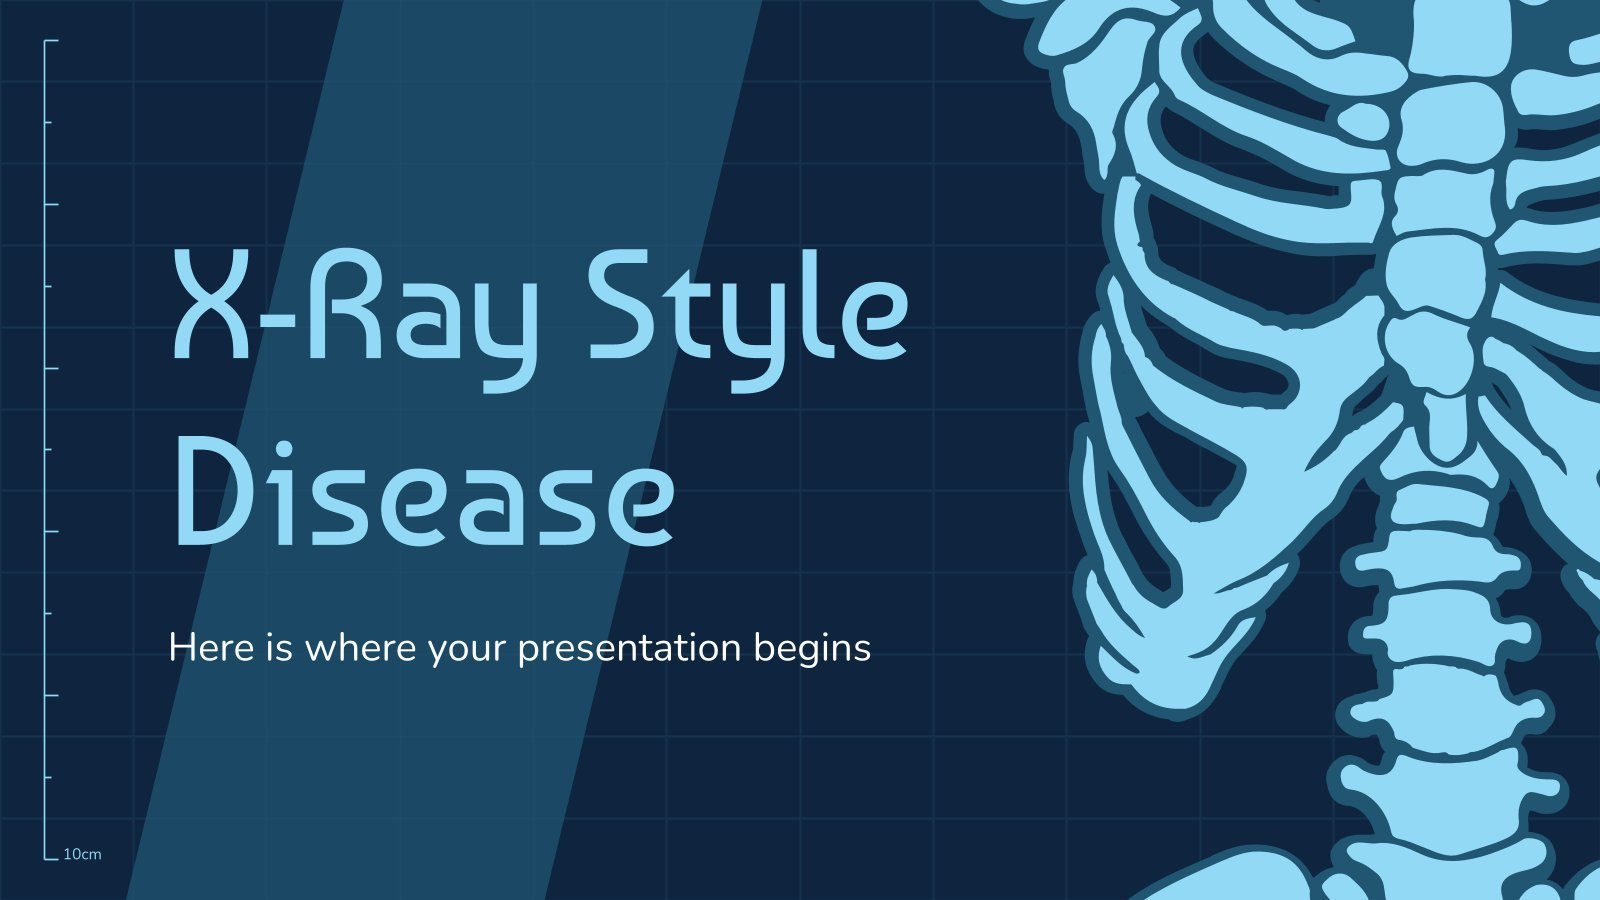 X-Ray Style Disease presentation template